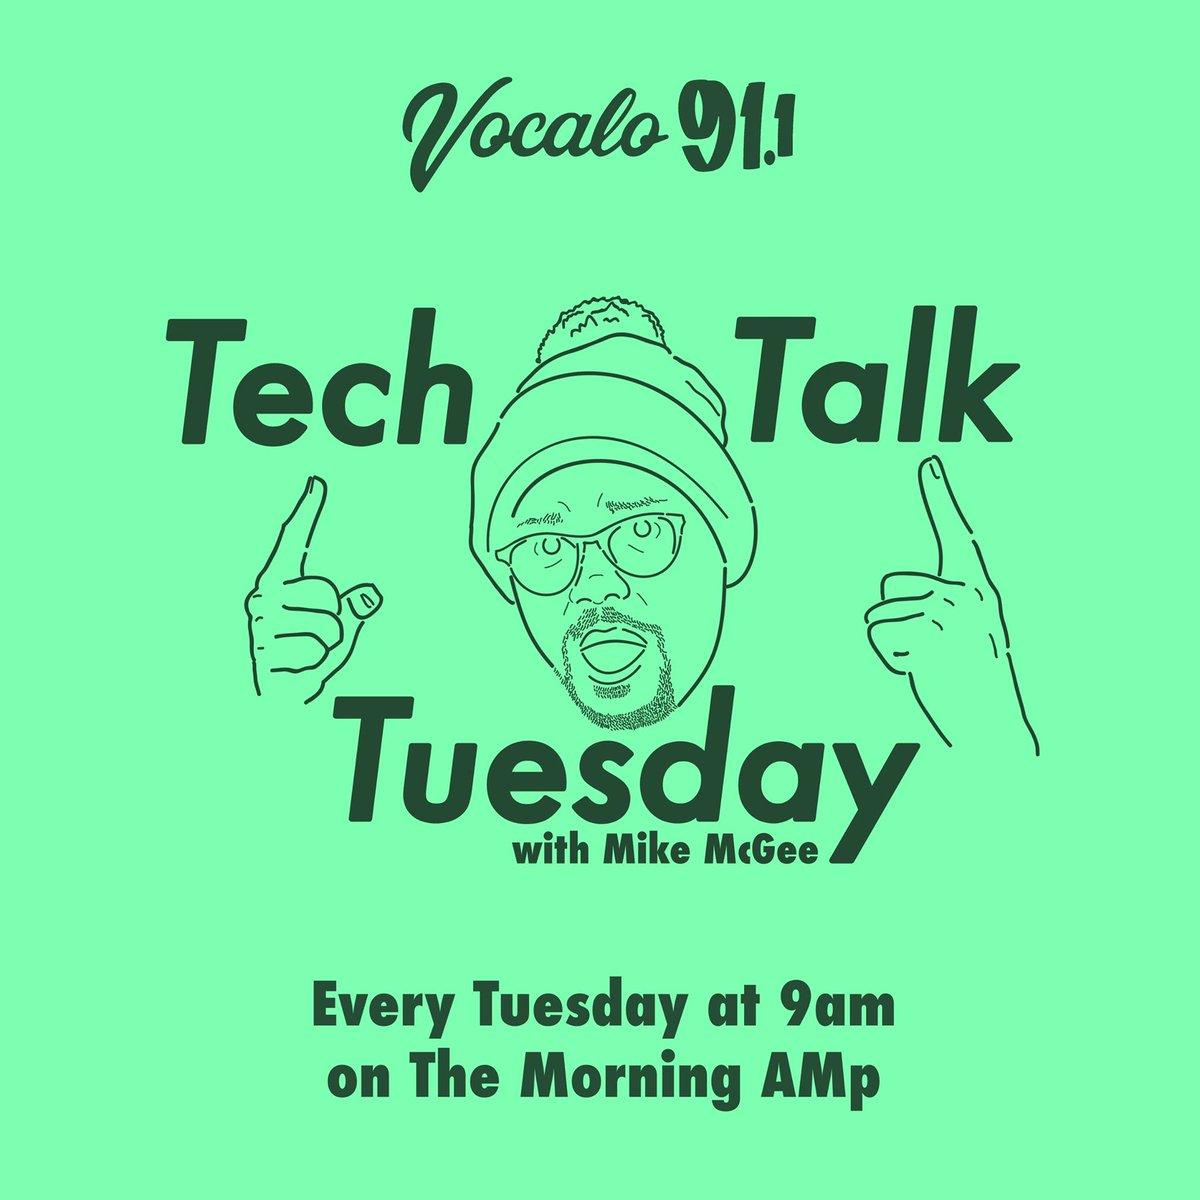 #Amazon is opening up a grocery store and #Apple credit card is being investigated for discrimination against women. This and more on #TechTalk with @michaelmcgee up next on @TheMorningAMp! Tune in: 📻91.1FM 💻vocalo.org/player 📱Vocalo app